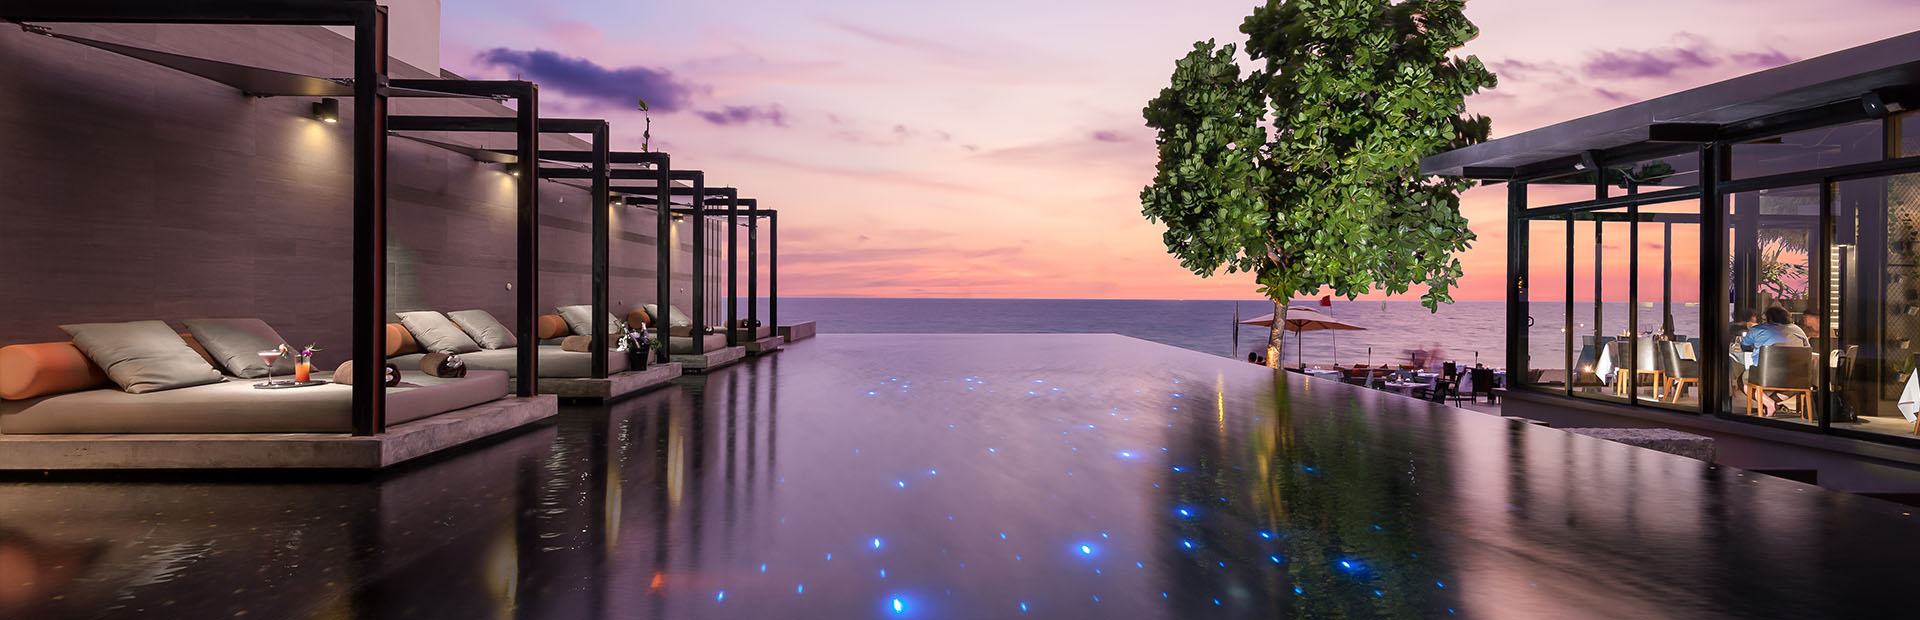 Five Star Luxury Beach Resort - Aleenta Phuket Resort & Spa